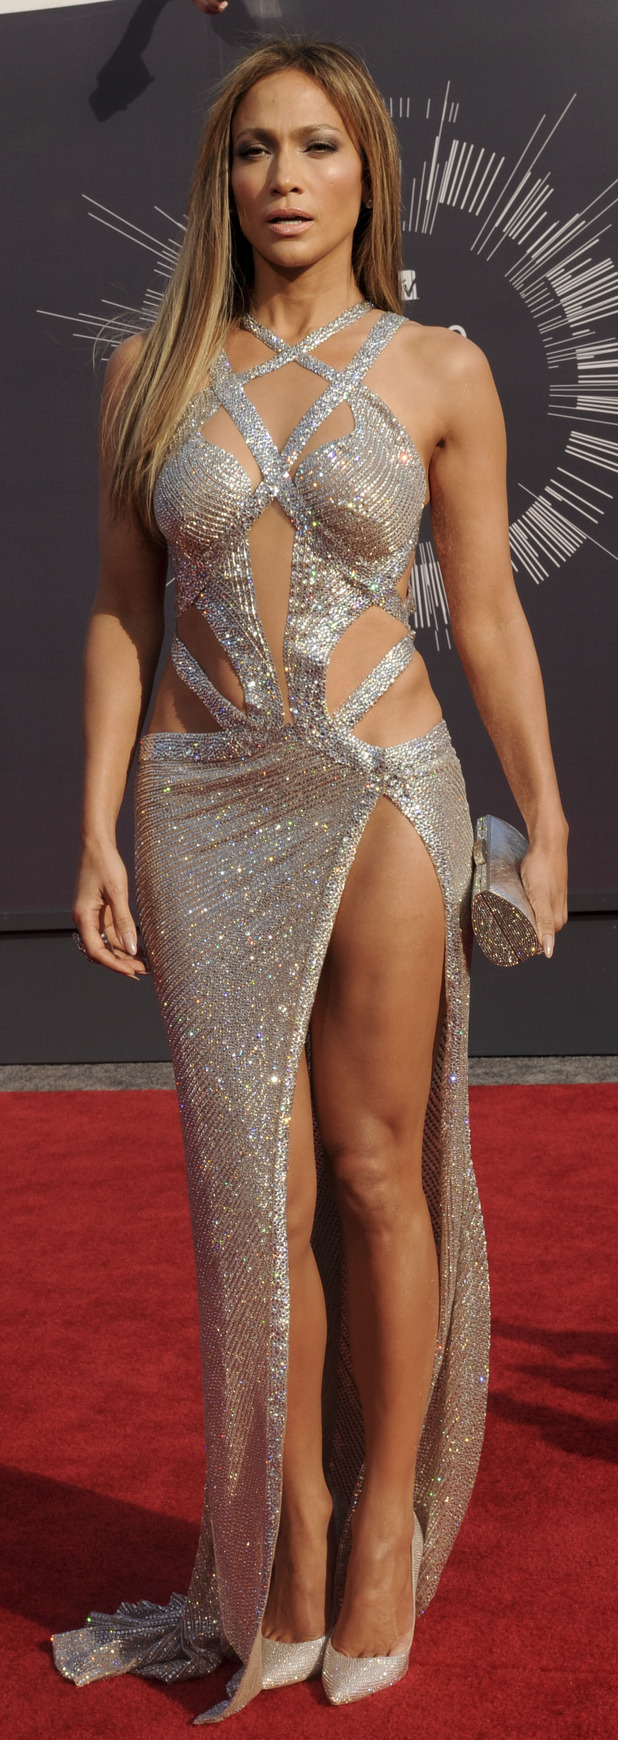 Jennifer Lopez at the MTV VMA's in 2014 28th August 2015